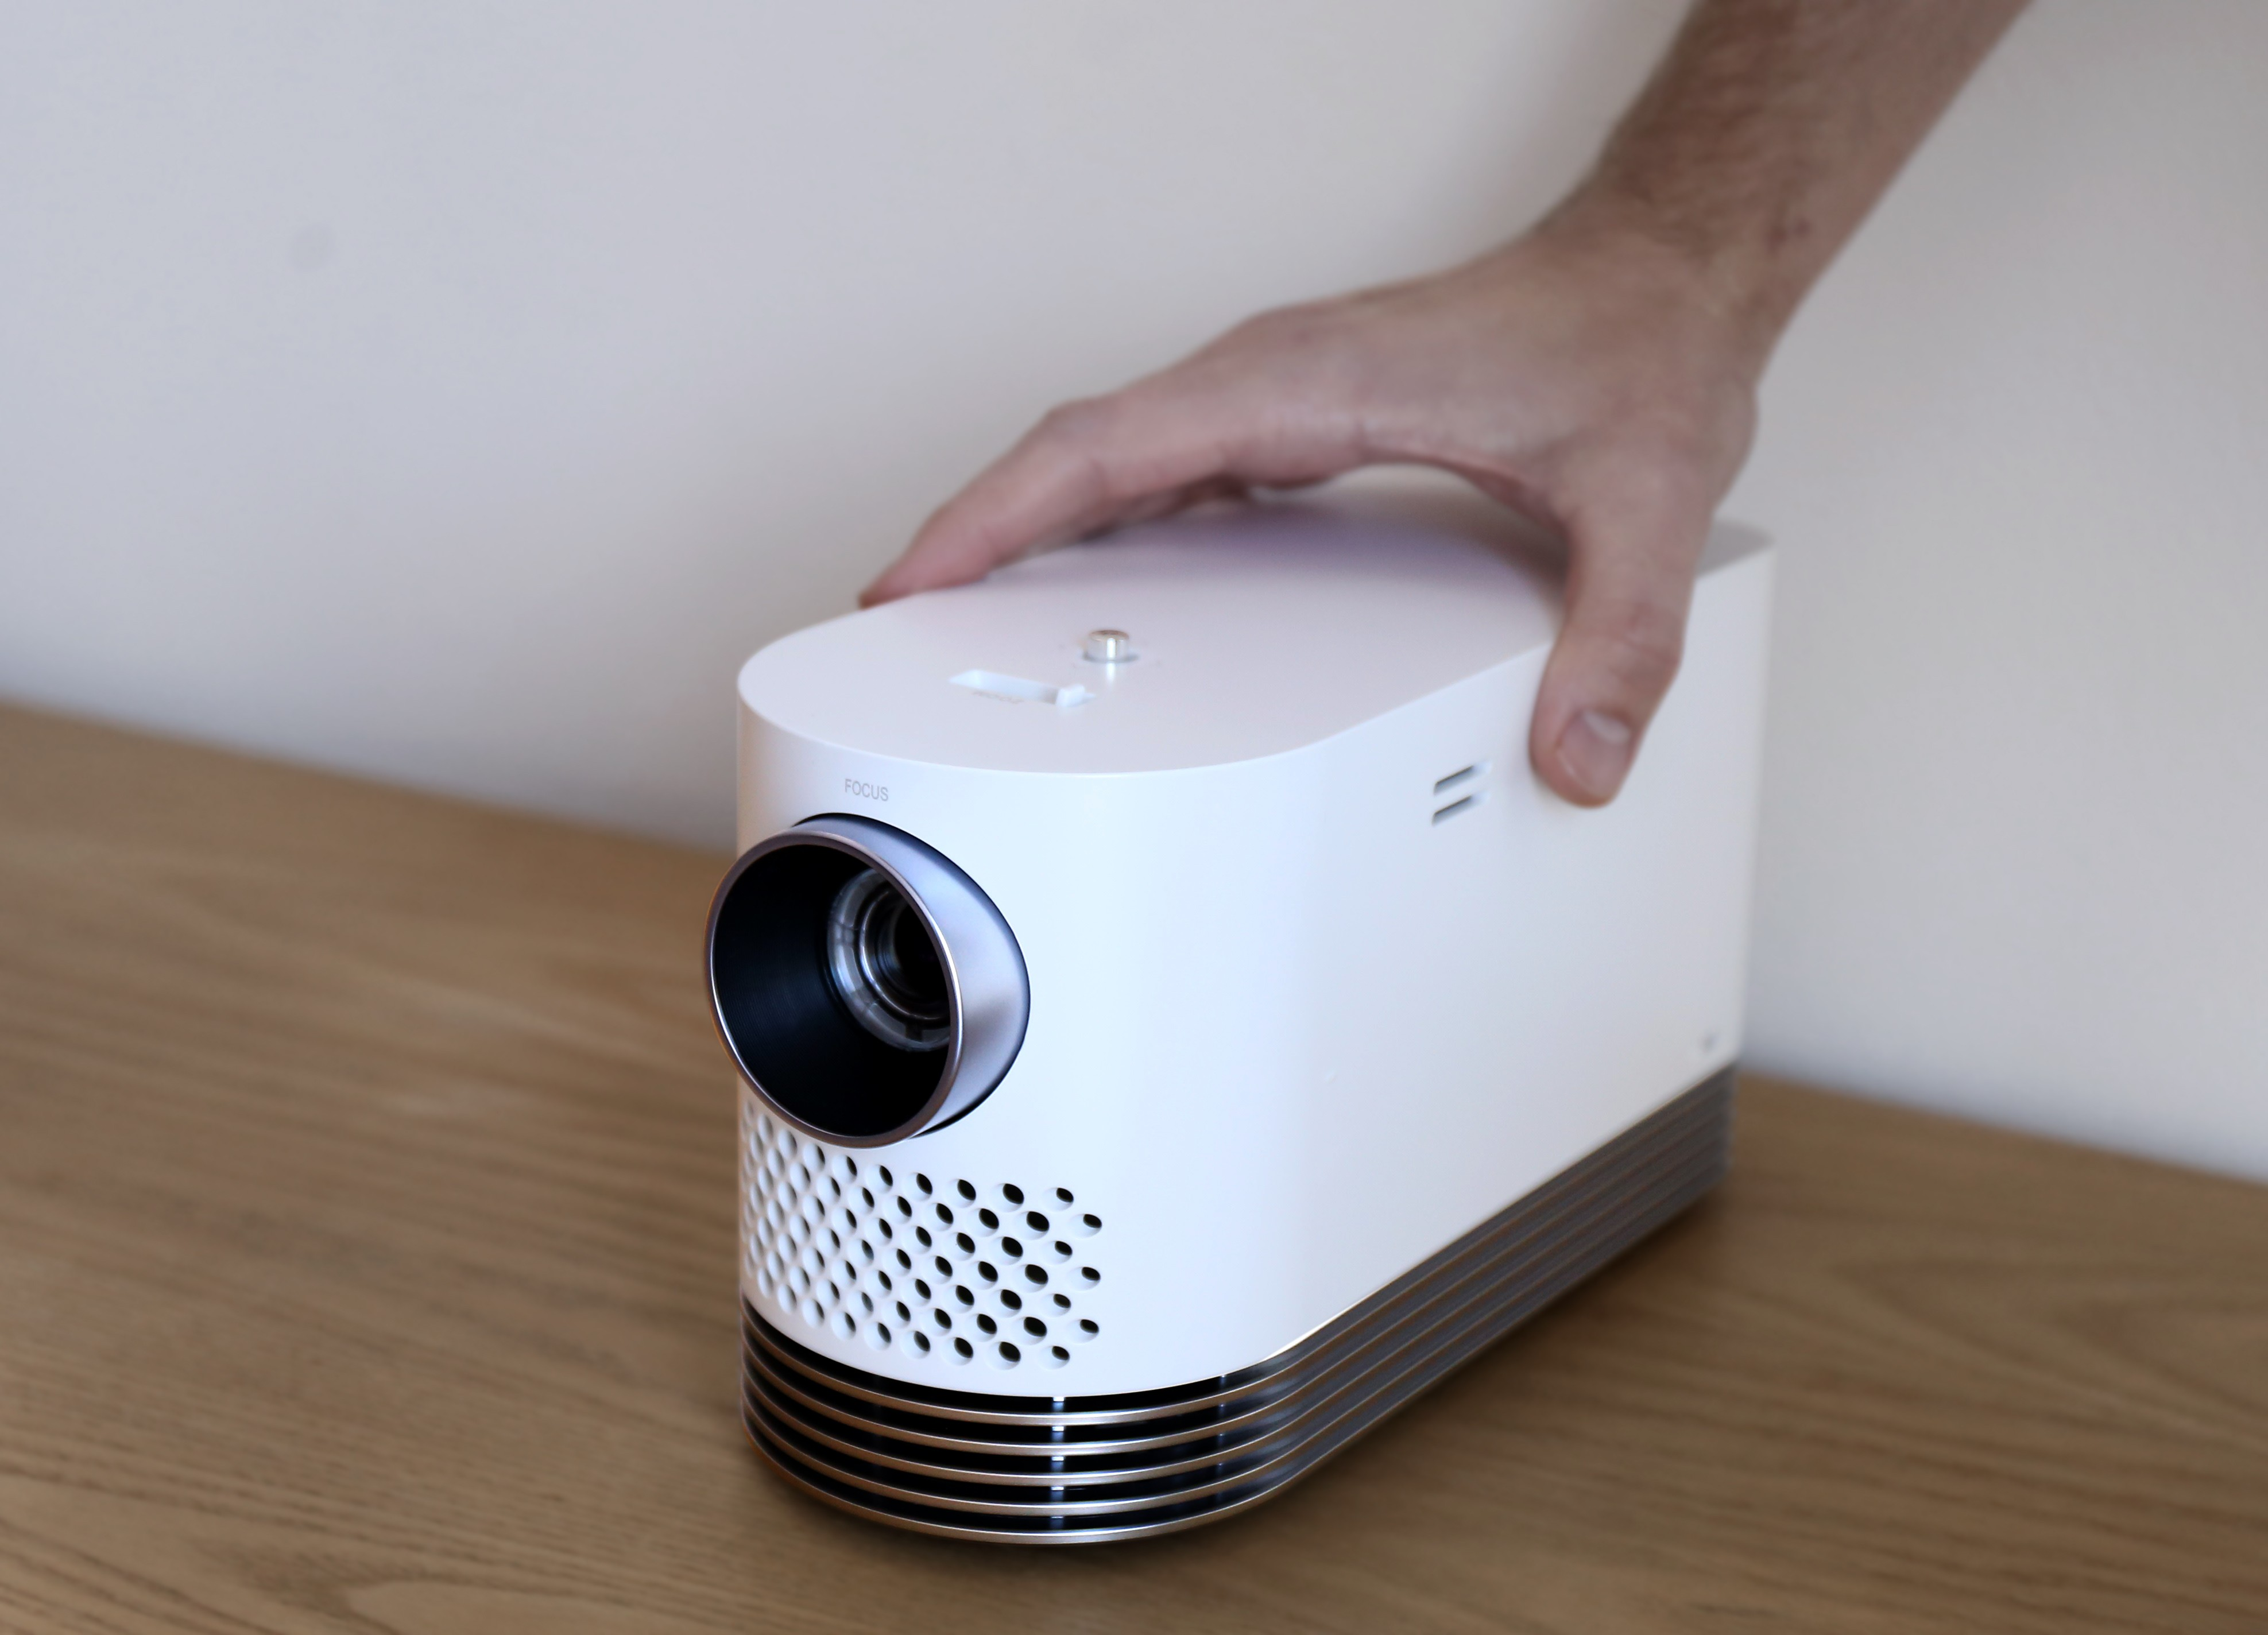 Front view of LG Probeam Laser Projector (model HF80J) facing 15 degrees to the left while being touched by a man's hand